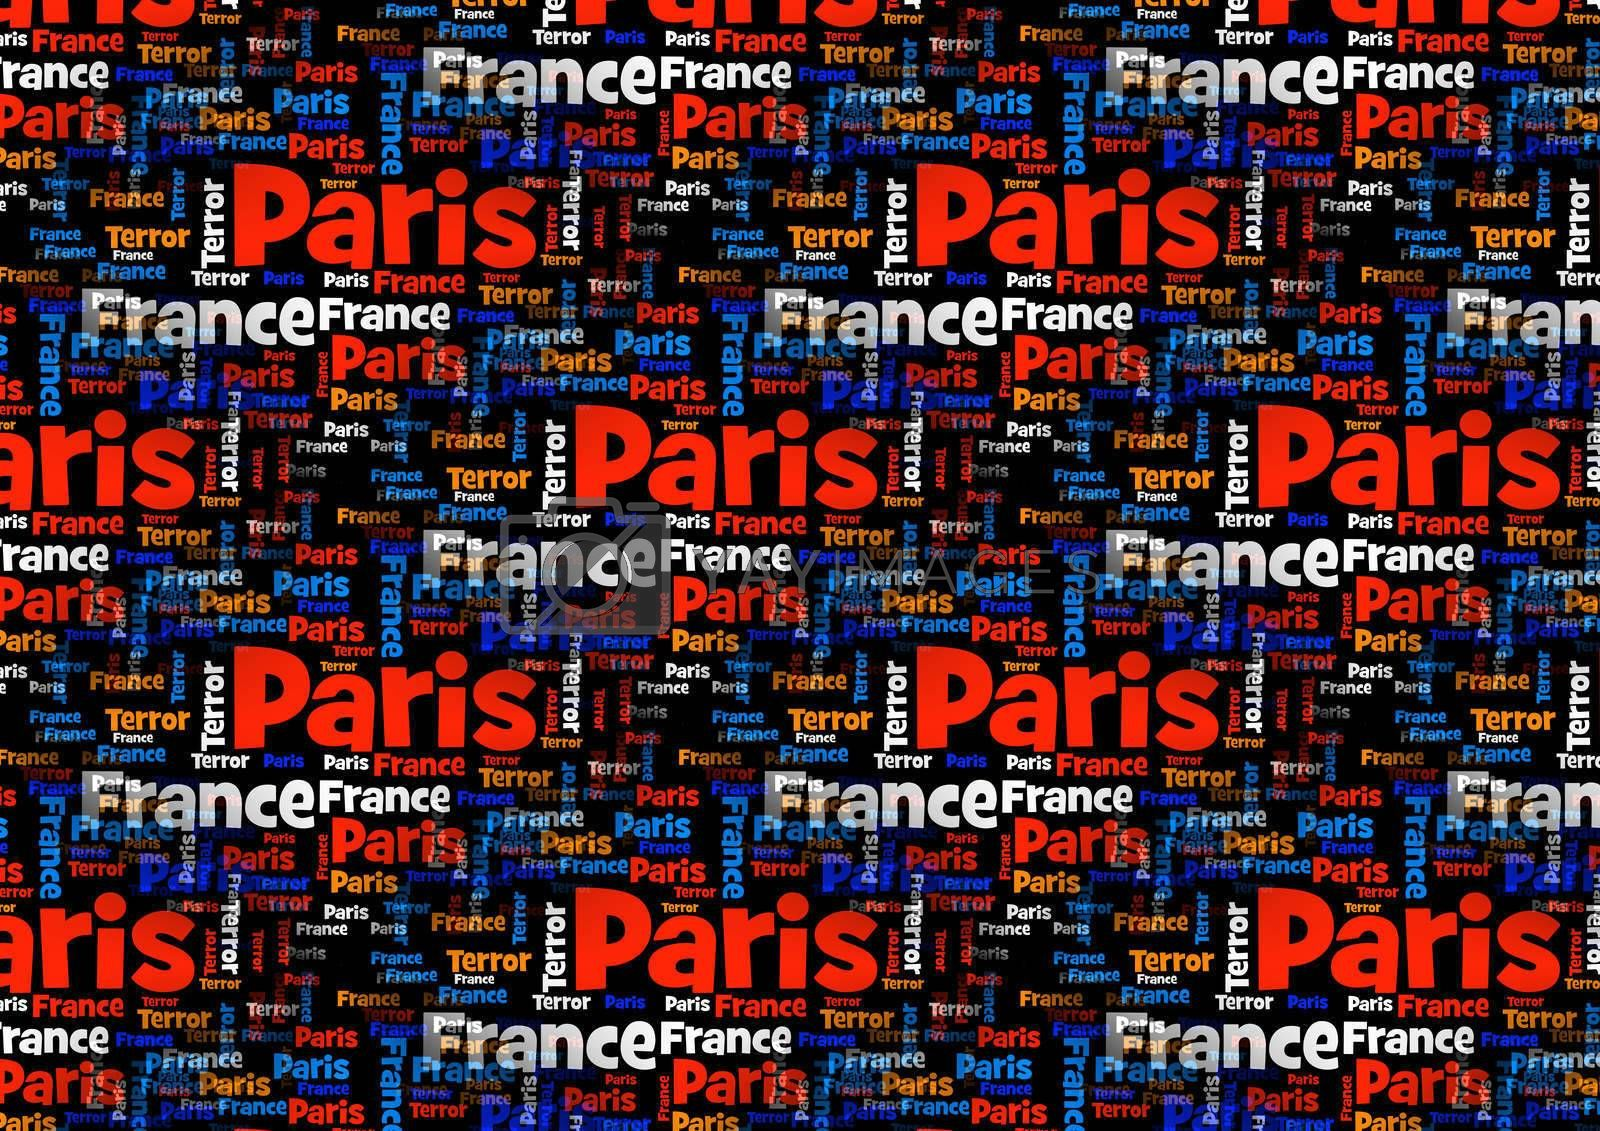 Wordcloud with the words Paris France Terror on black background.